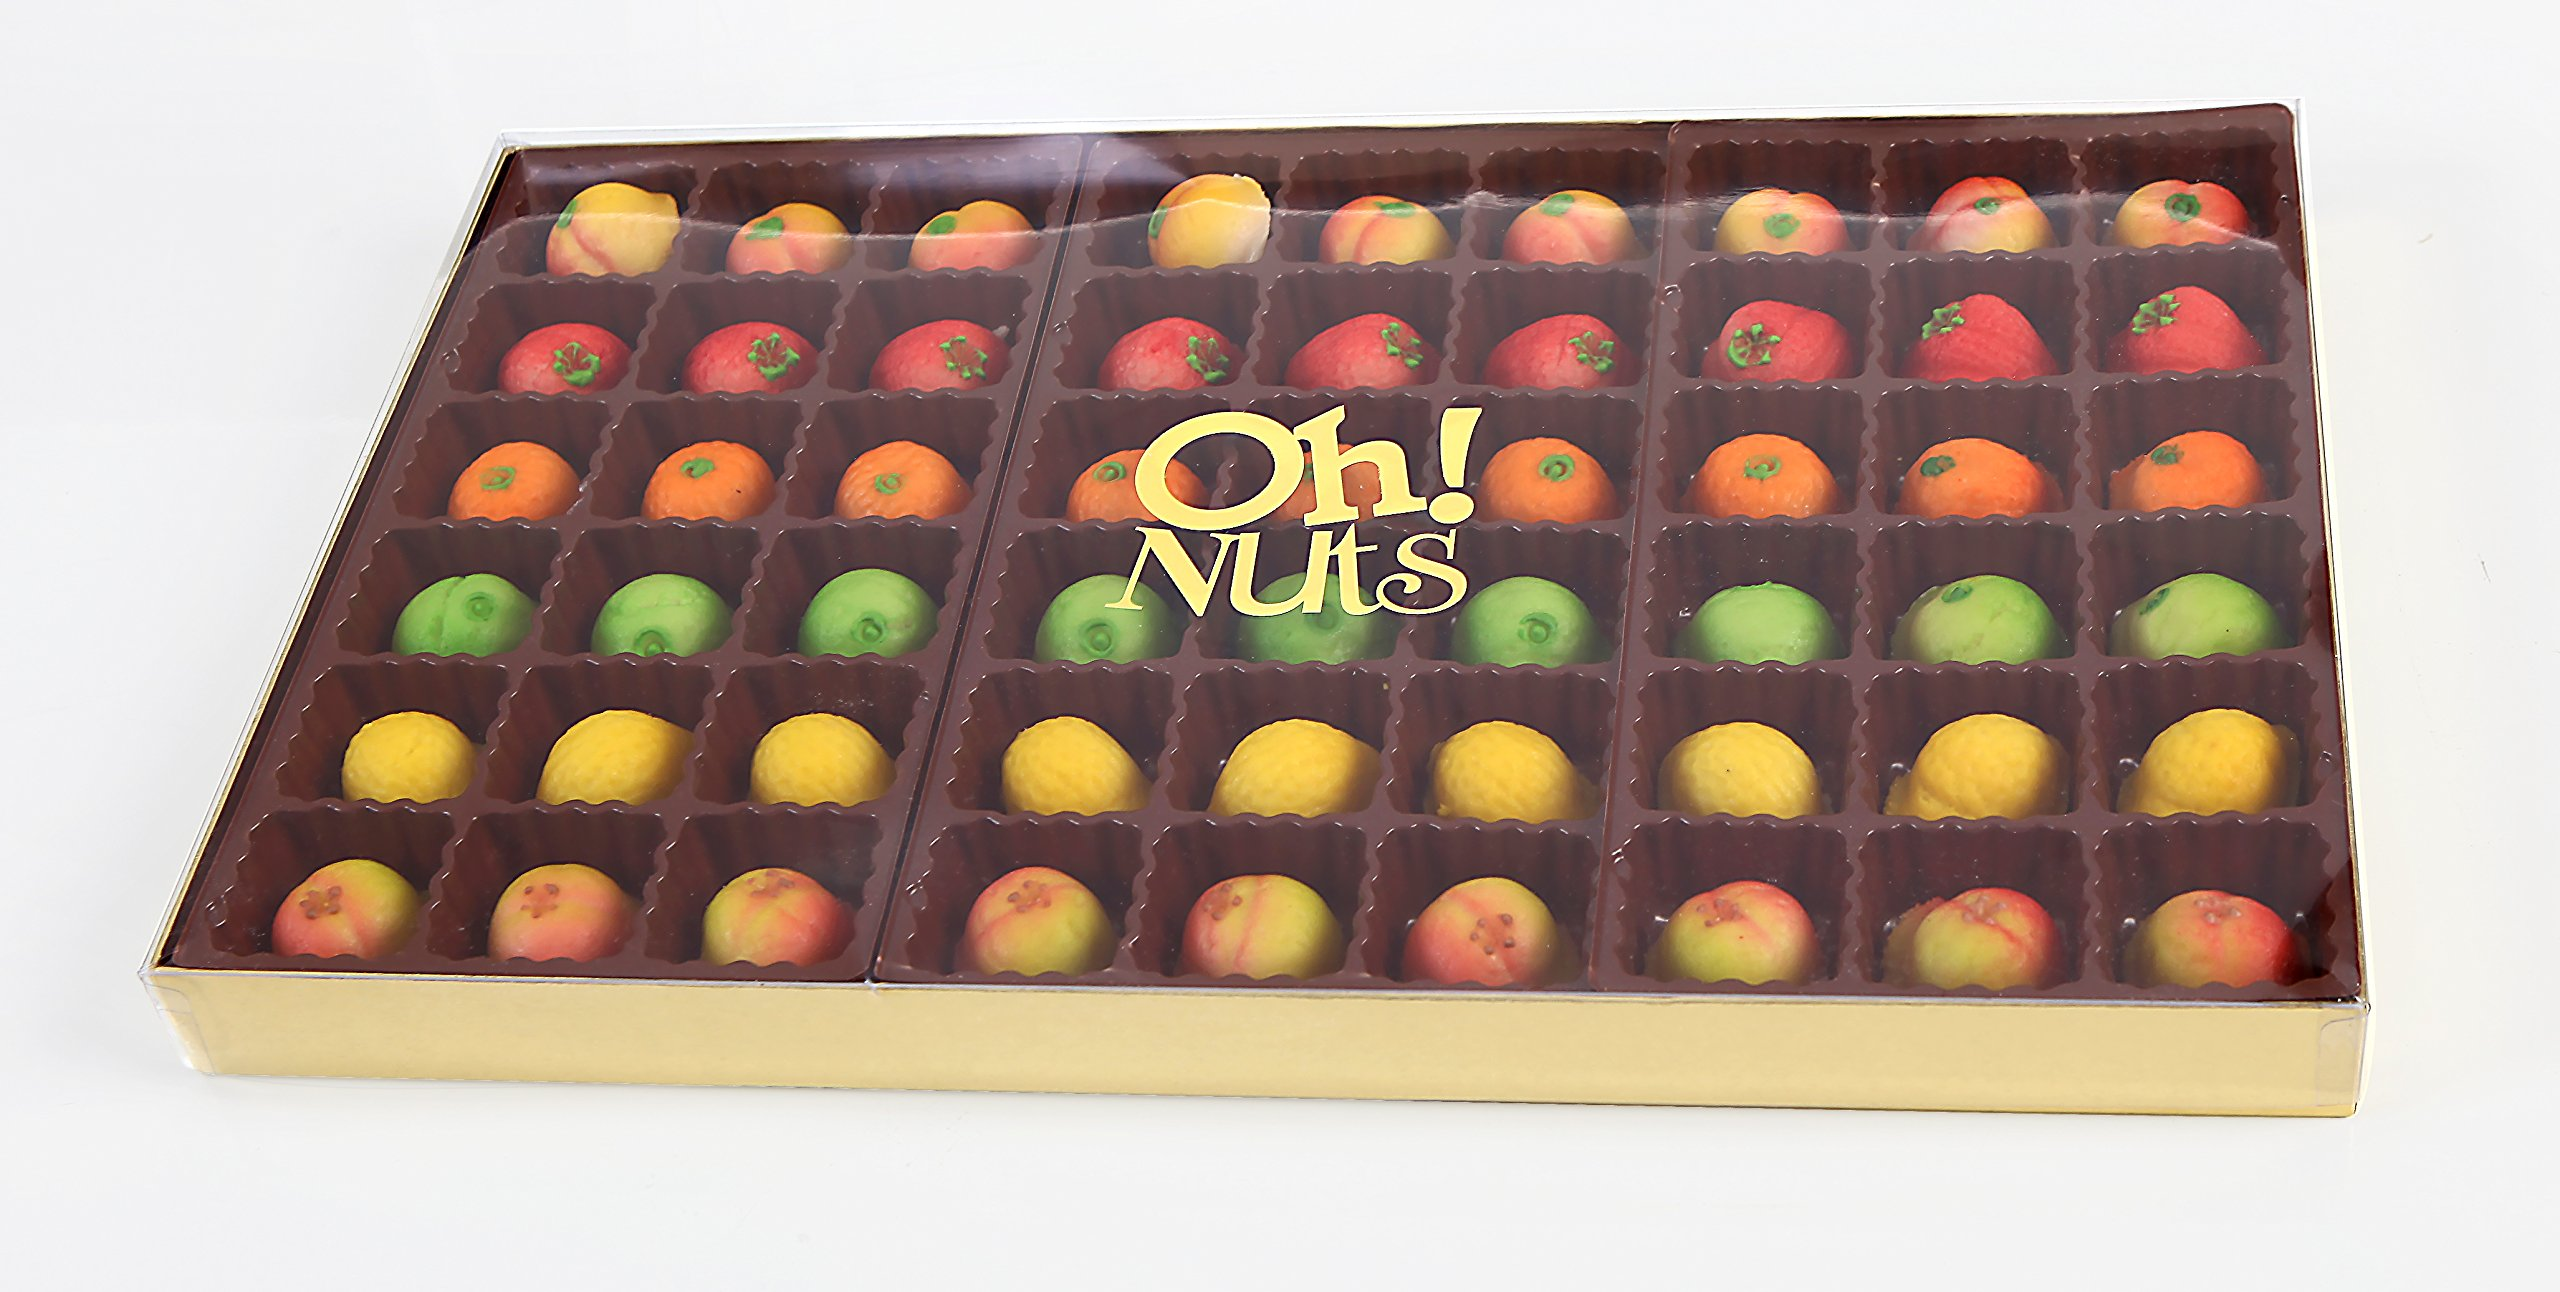 Oh! Nuts® Marzipan Candy Fruits, Holiday Gourmet Marzipans Tray in an Elegant Gift Box, Unique Basket for Women & Men Alike, Send it For Thanksgiving, Christmas Gourmet Food Idea (54 Piece) by Oh! Nuts® (Image #3)